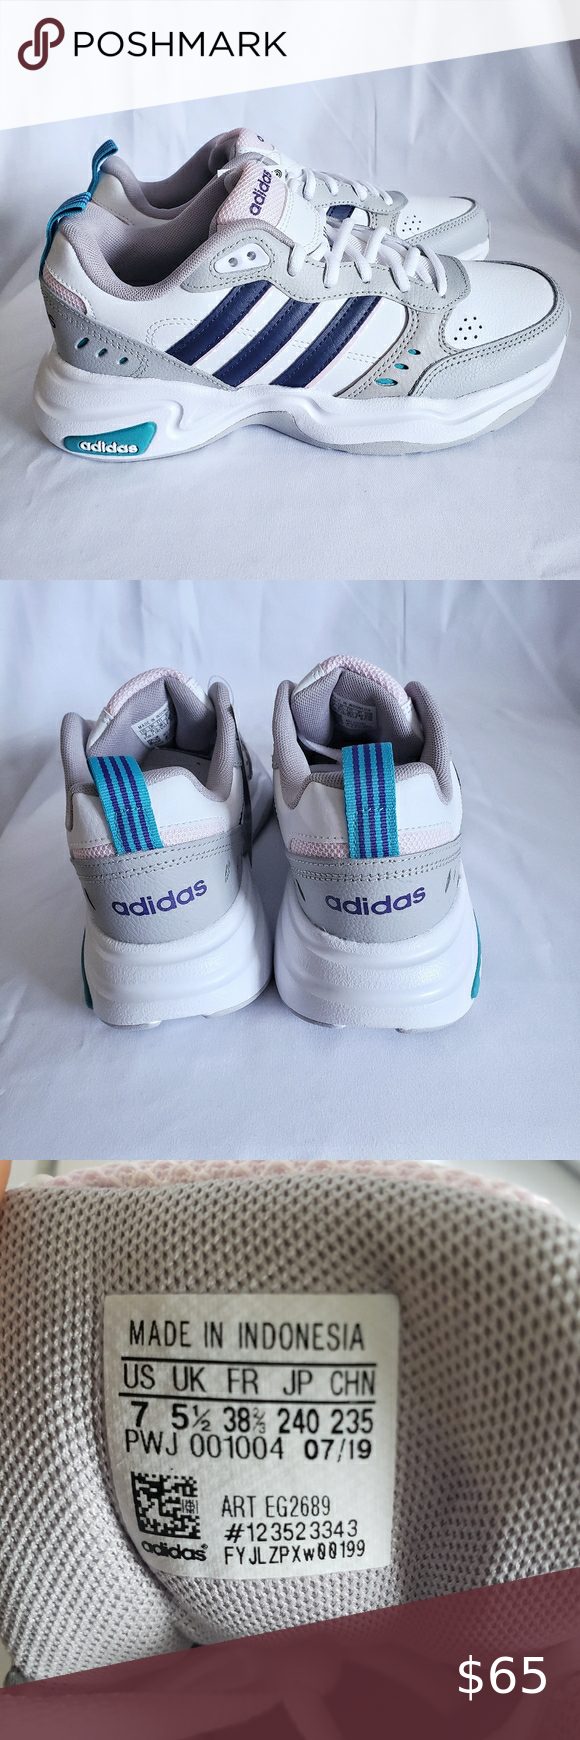 New Adidas Strutter shoes Size 7 Sneakers features a leather upper ...